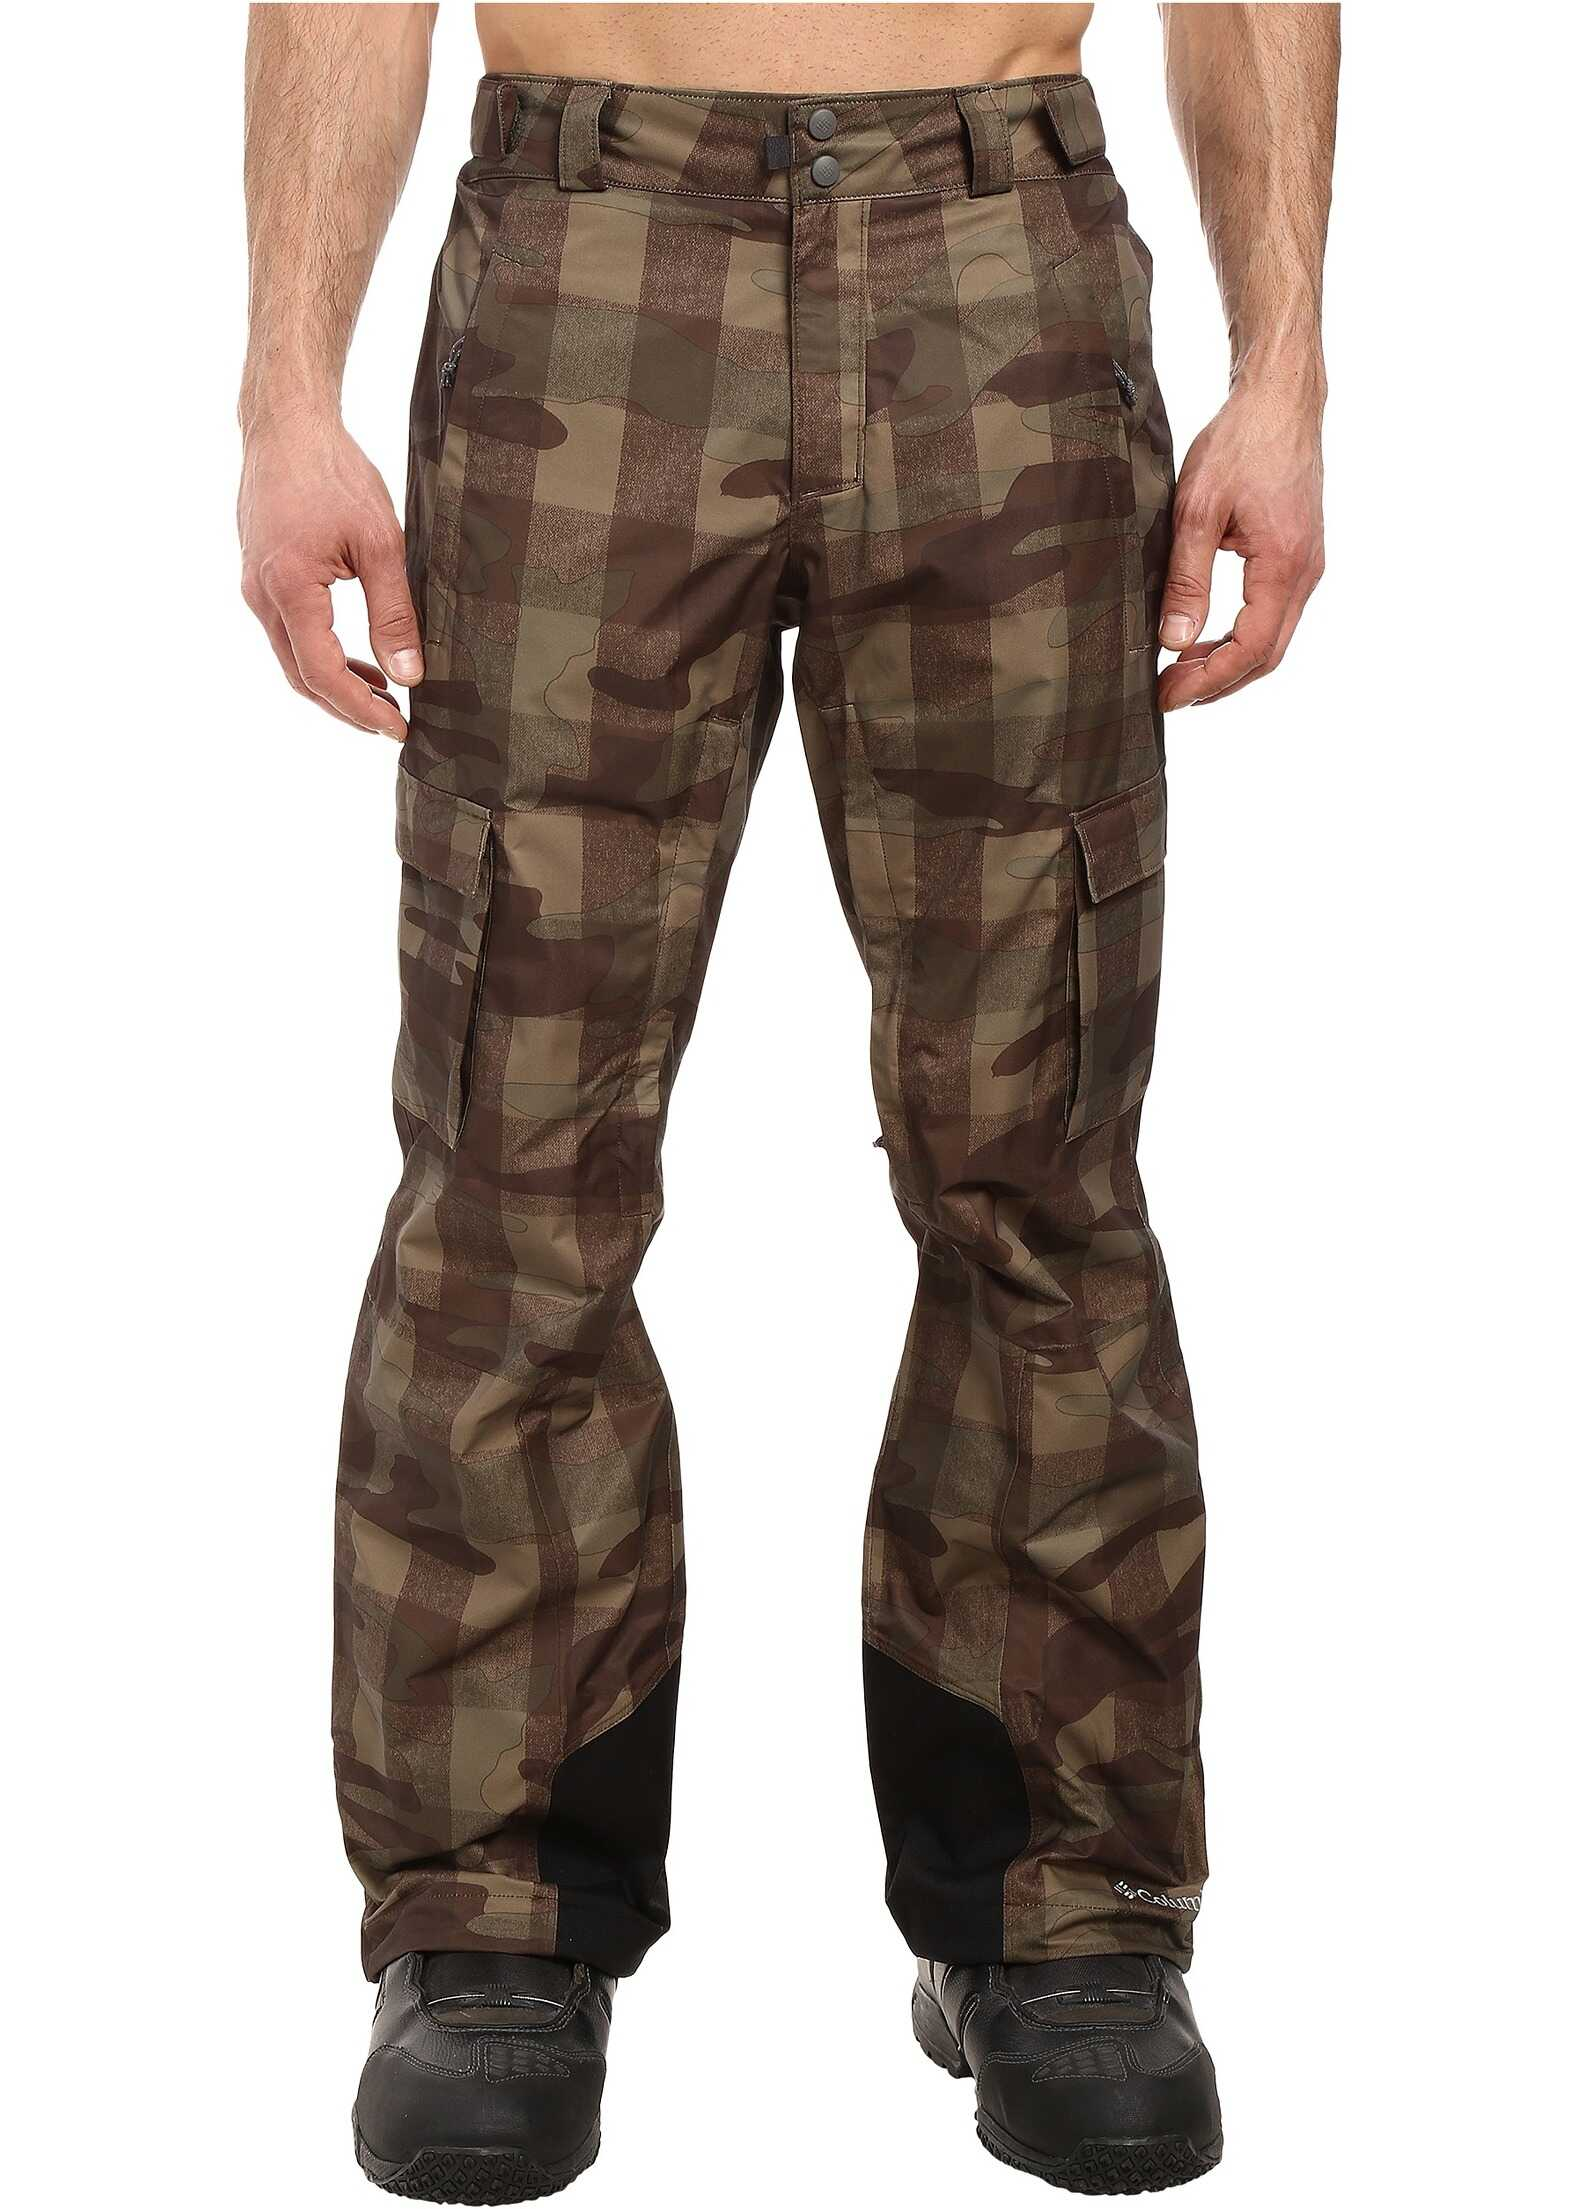 Columbia Ridge 2 Run™ II Pant Peatmoss Buffalo Camo